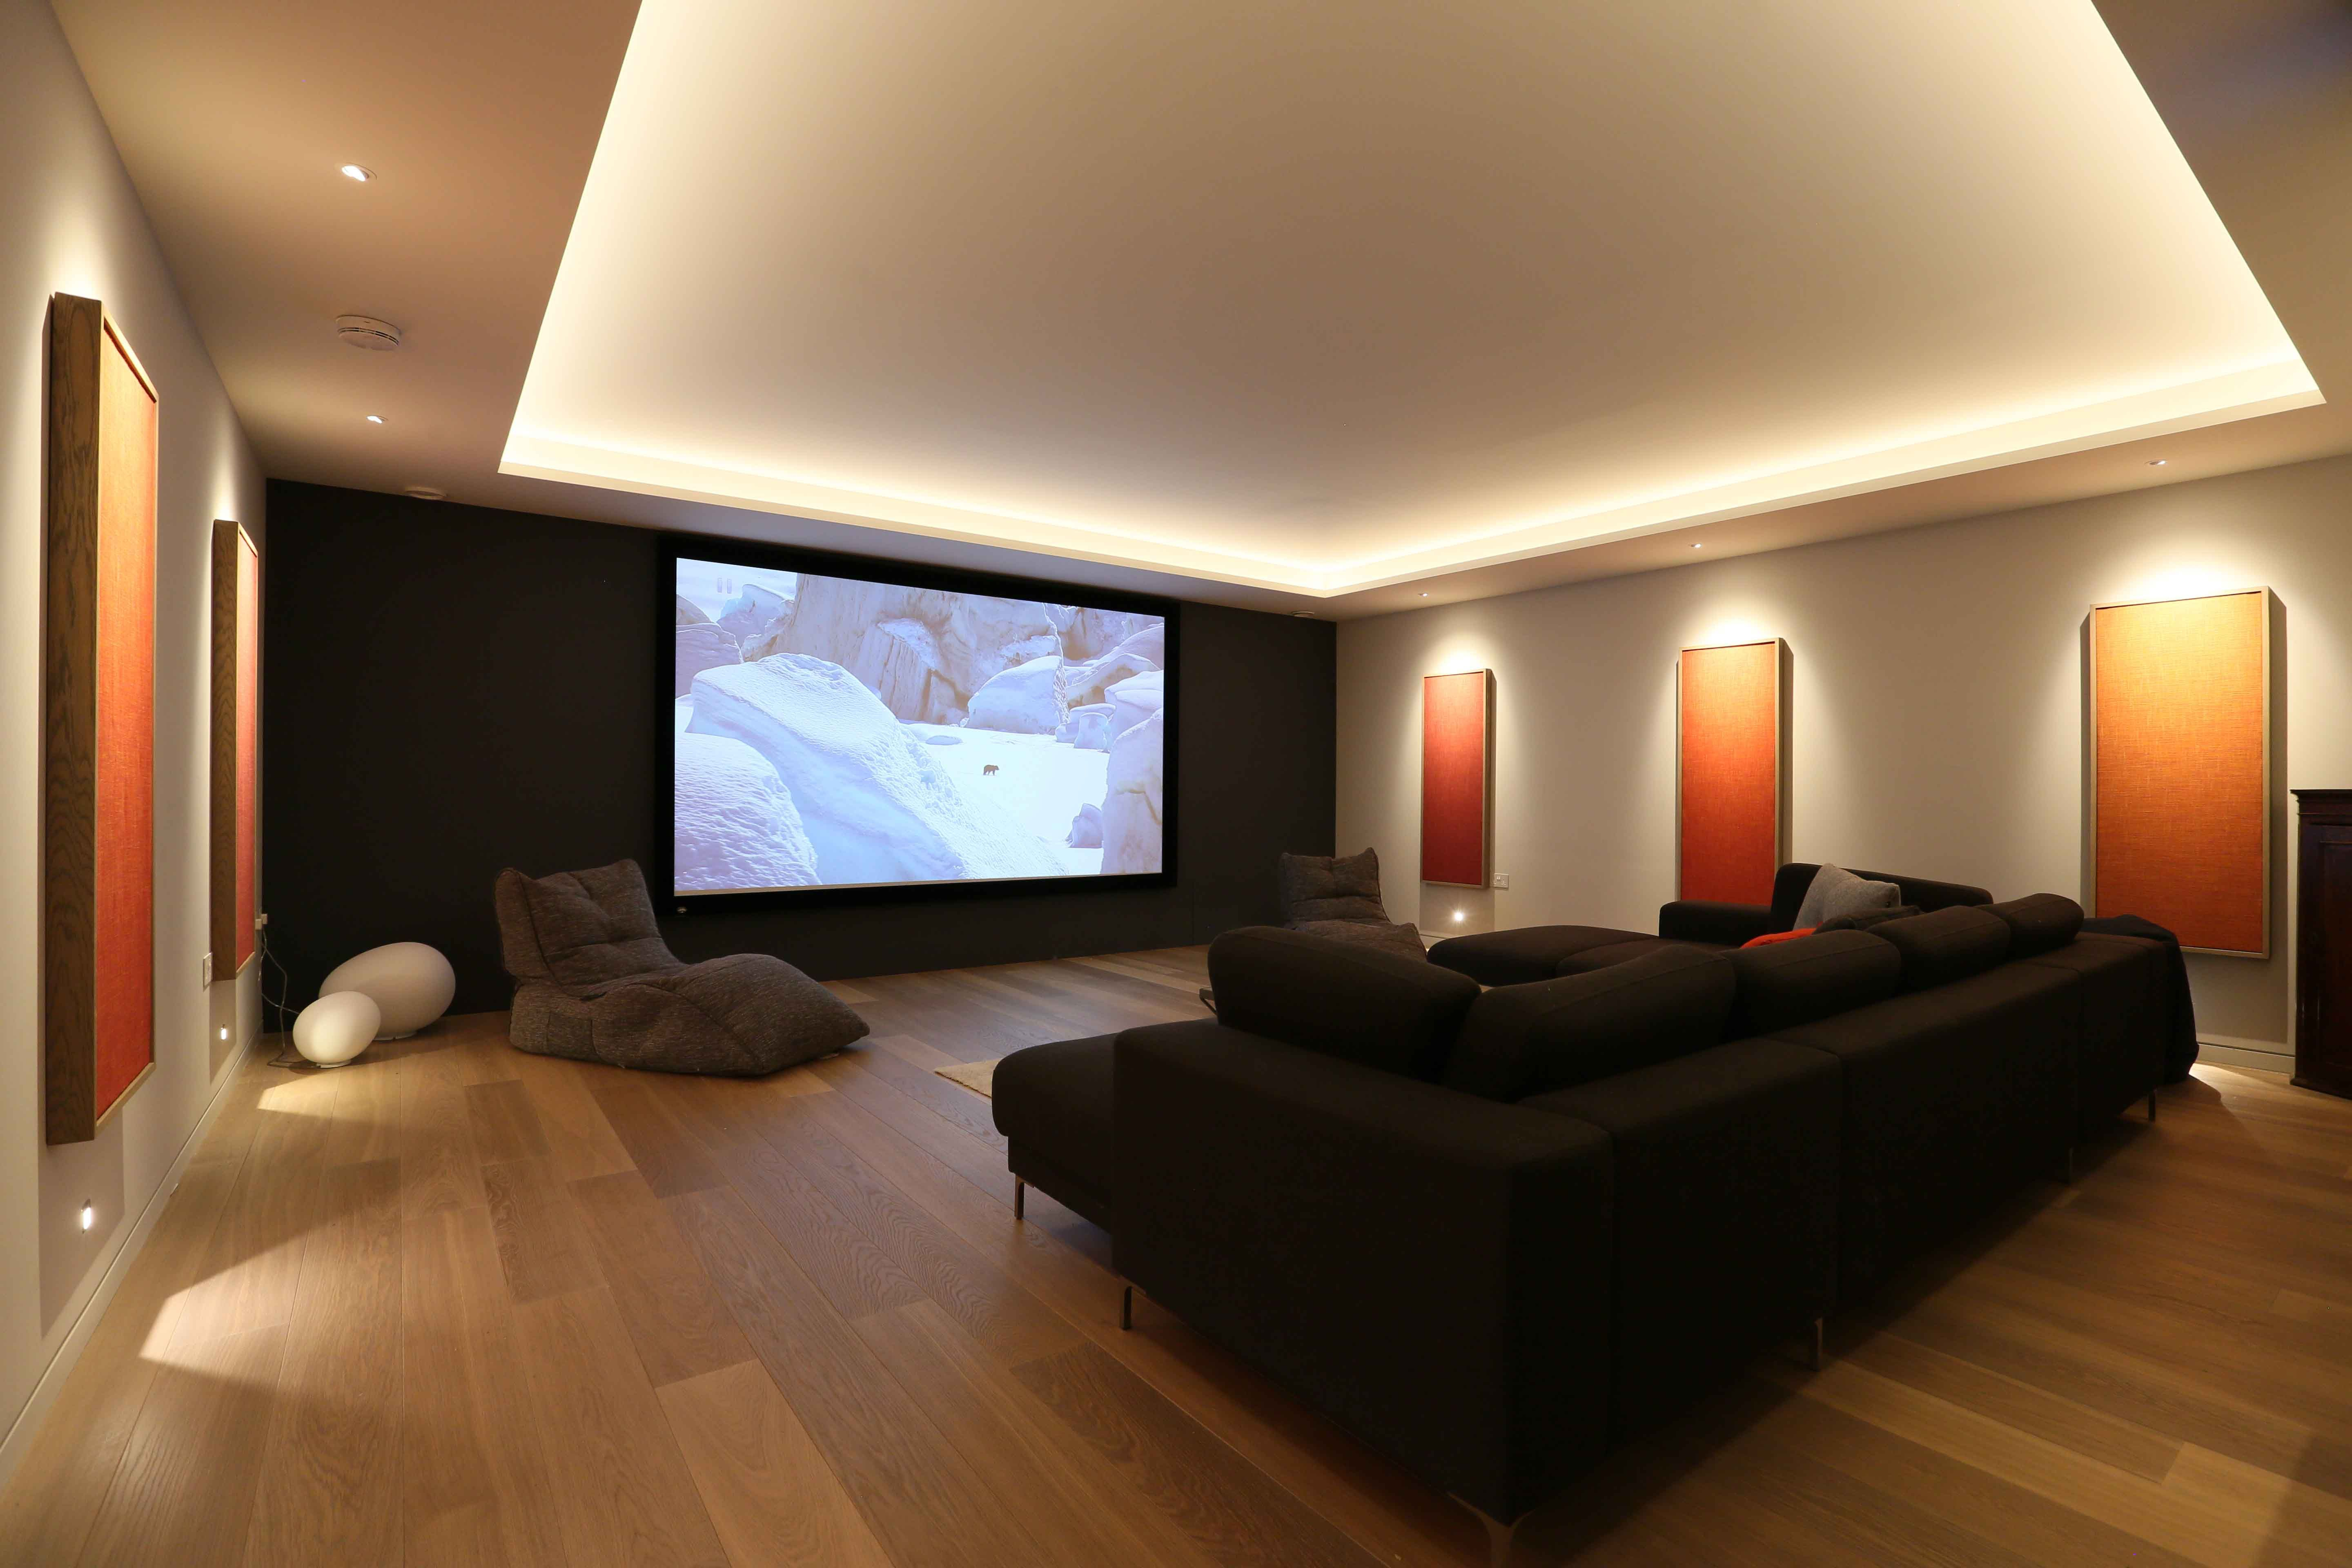 Cinema entertainment room lighting john cullen cinema lighting cinema room lighting design using discreet wall lights downlights and a contour strip in the ceiling aloadofball Choice Image